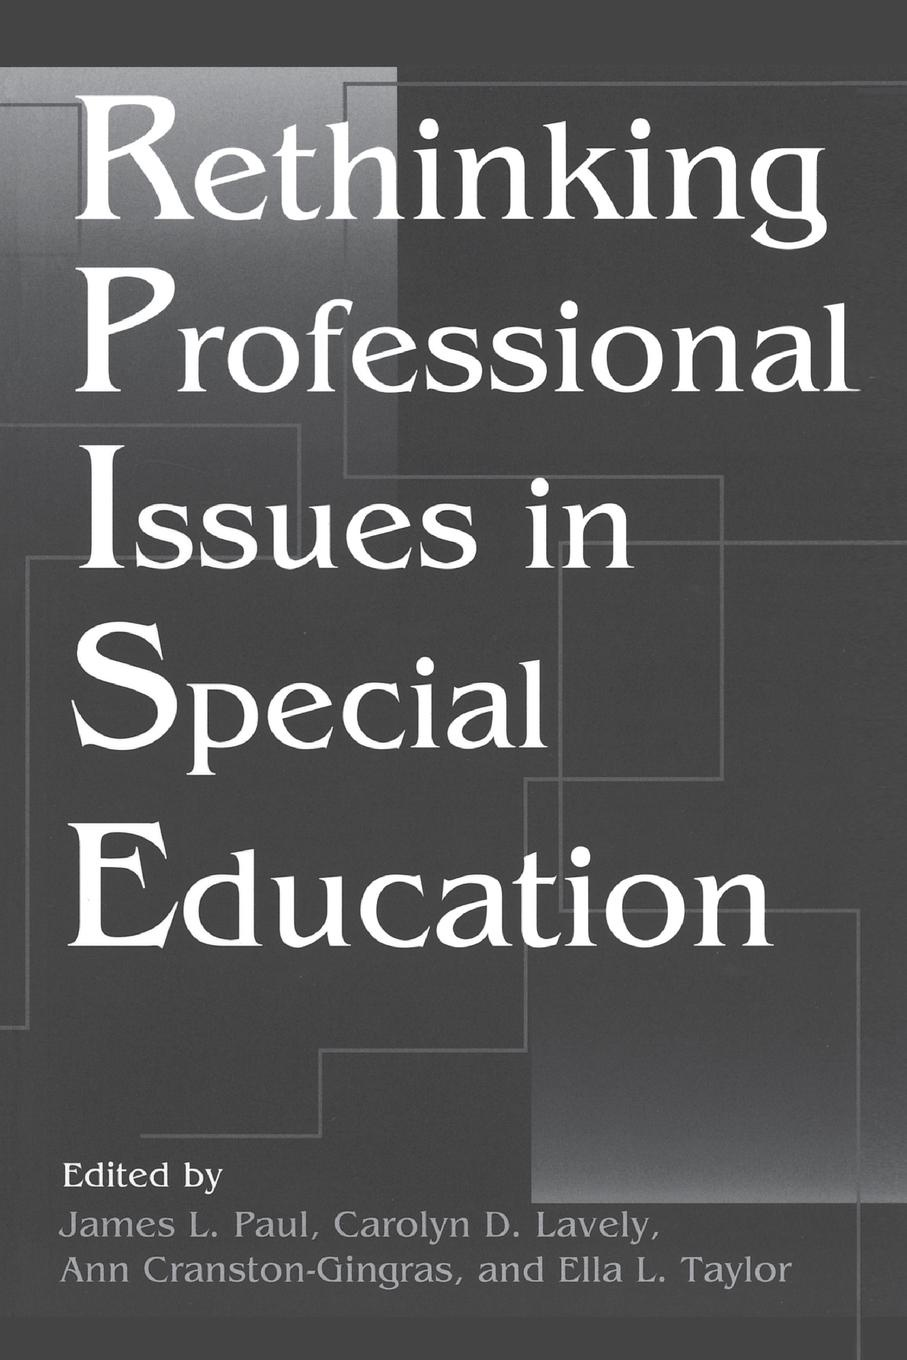 Rethinking Professional Issues in Special Education roland m schulz rethinking science education philosophical perspectives